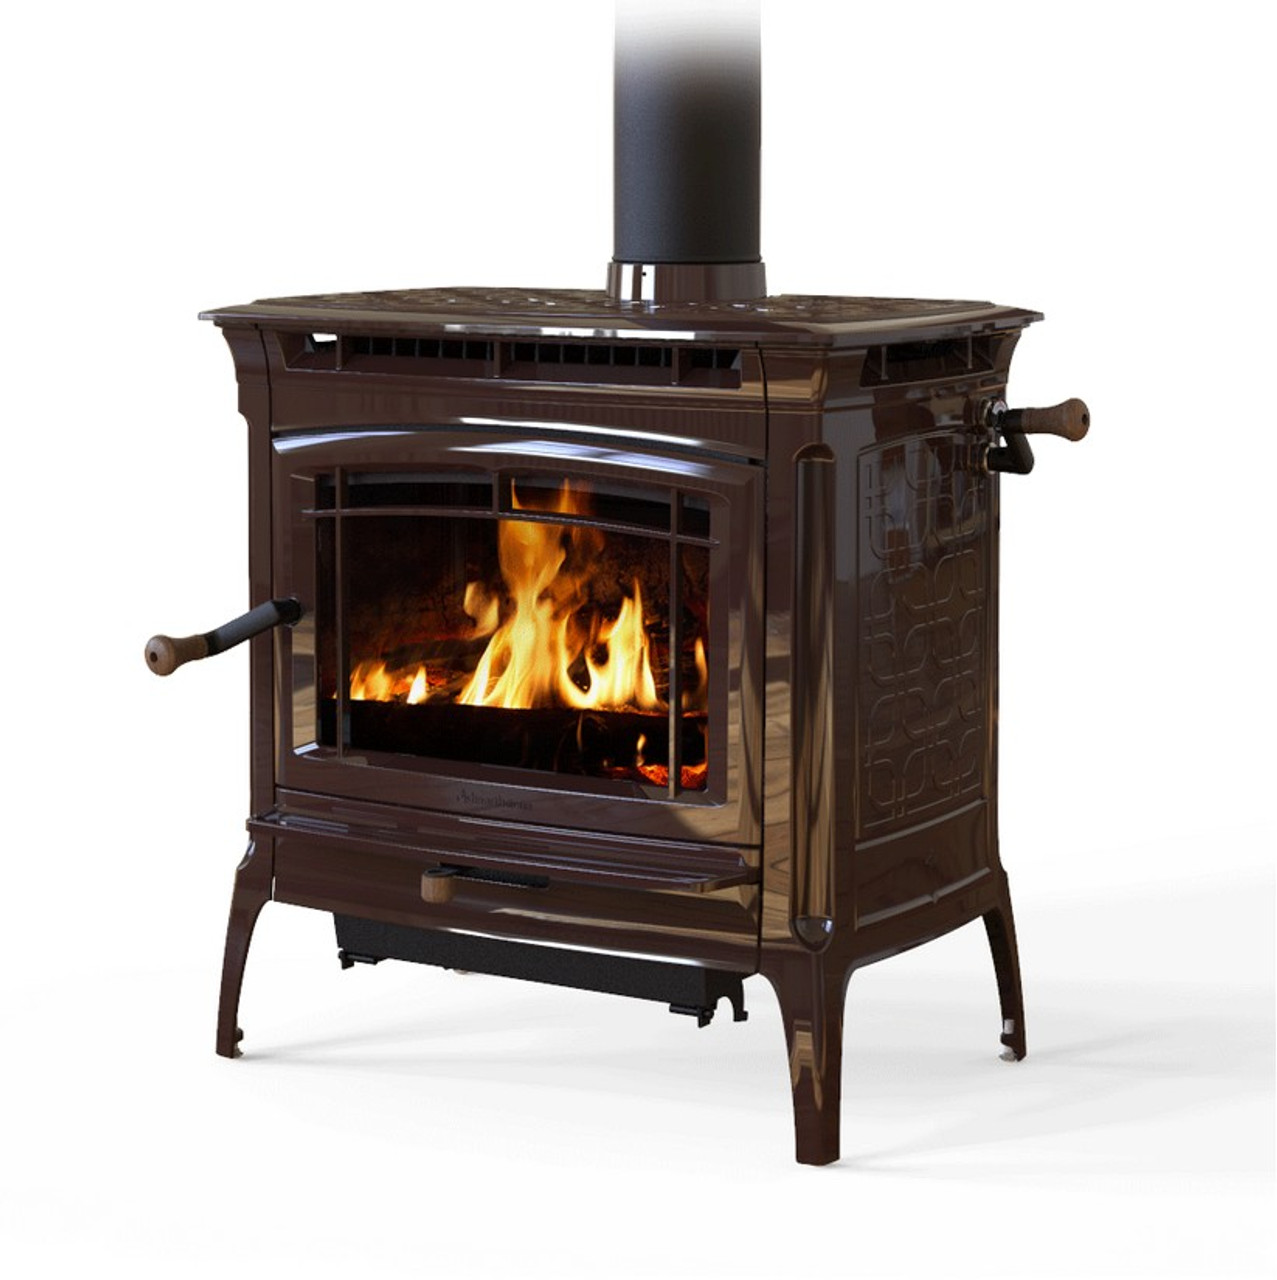 Hearthsone Manchester 8362 Wood Stove in Brown